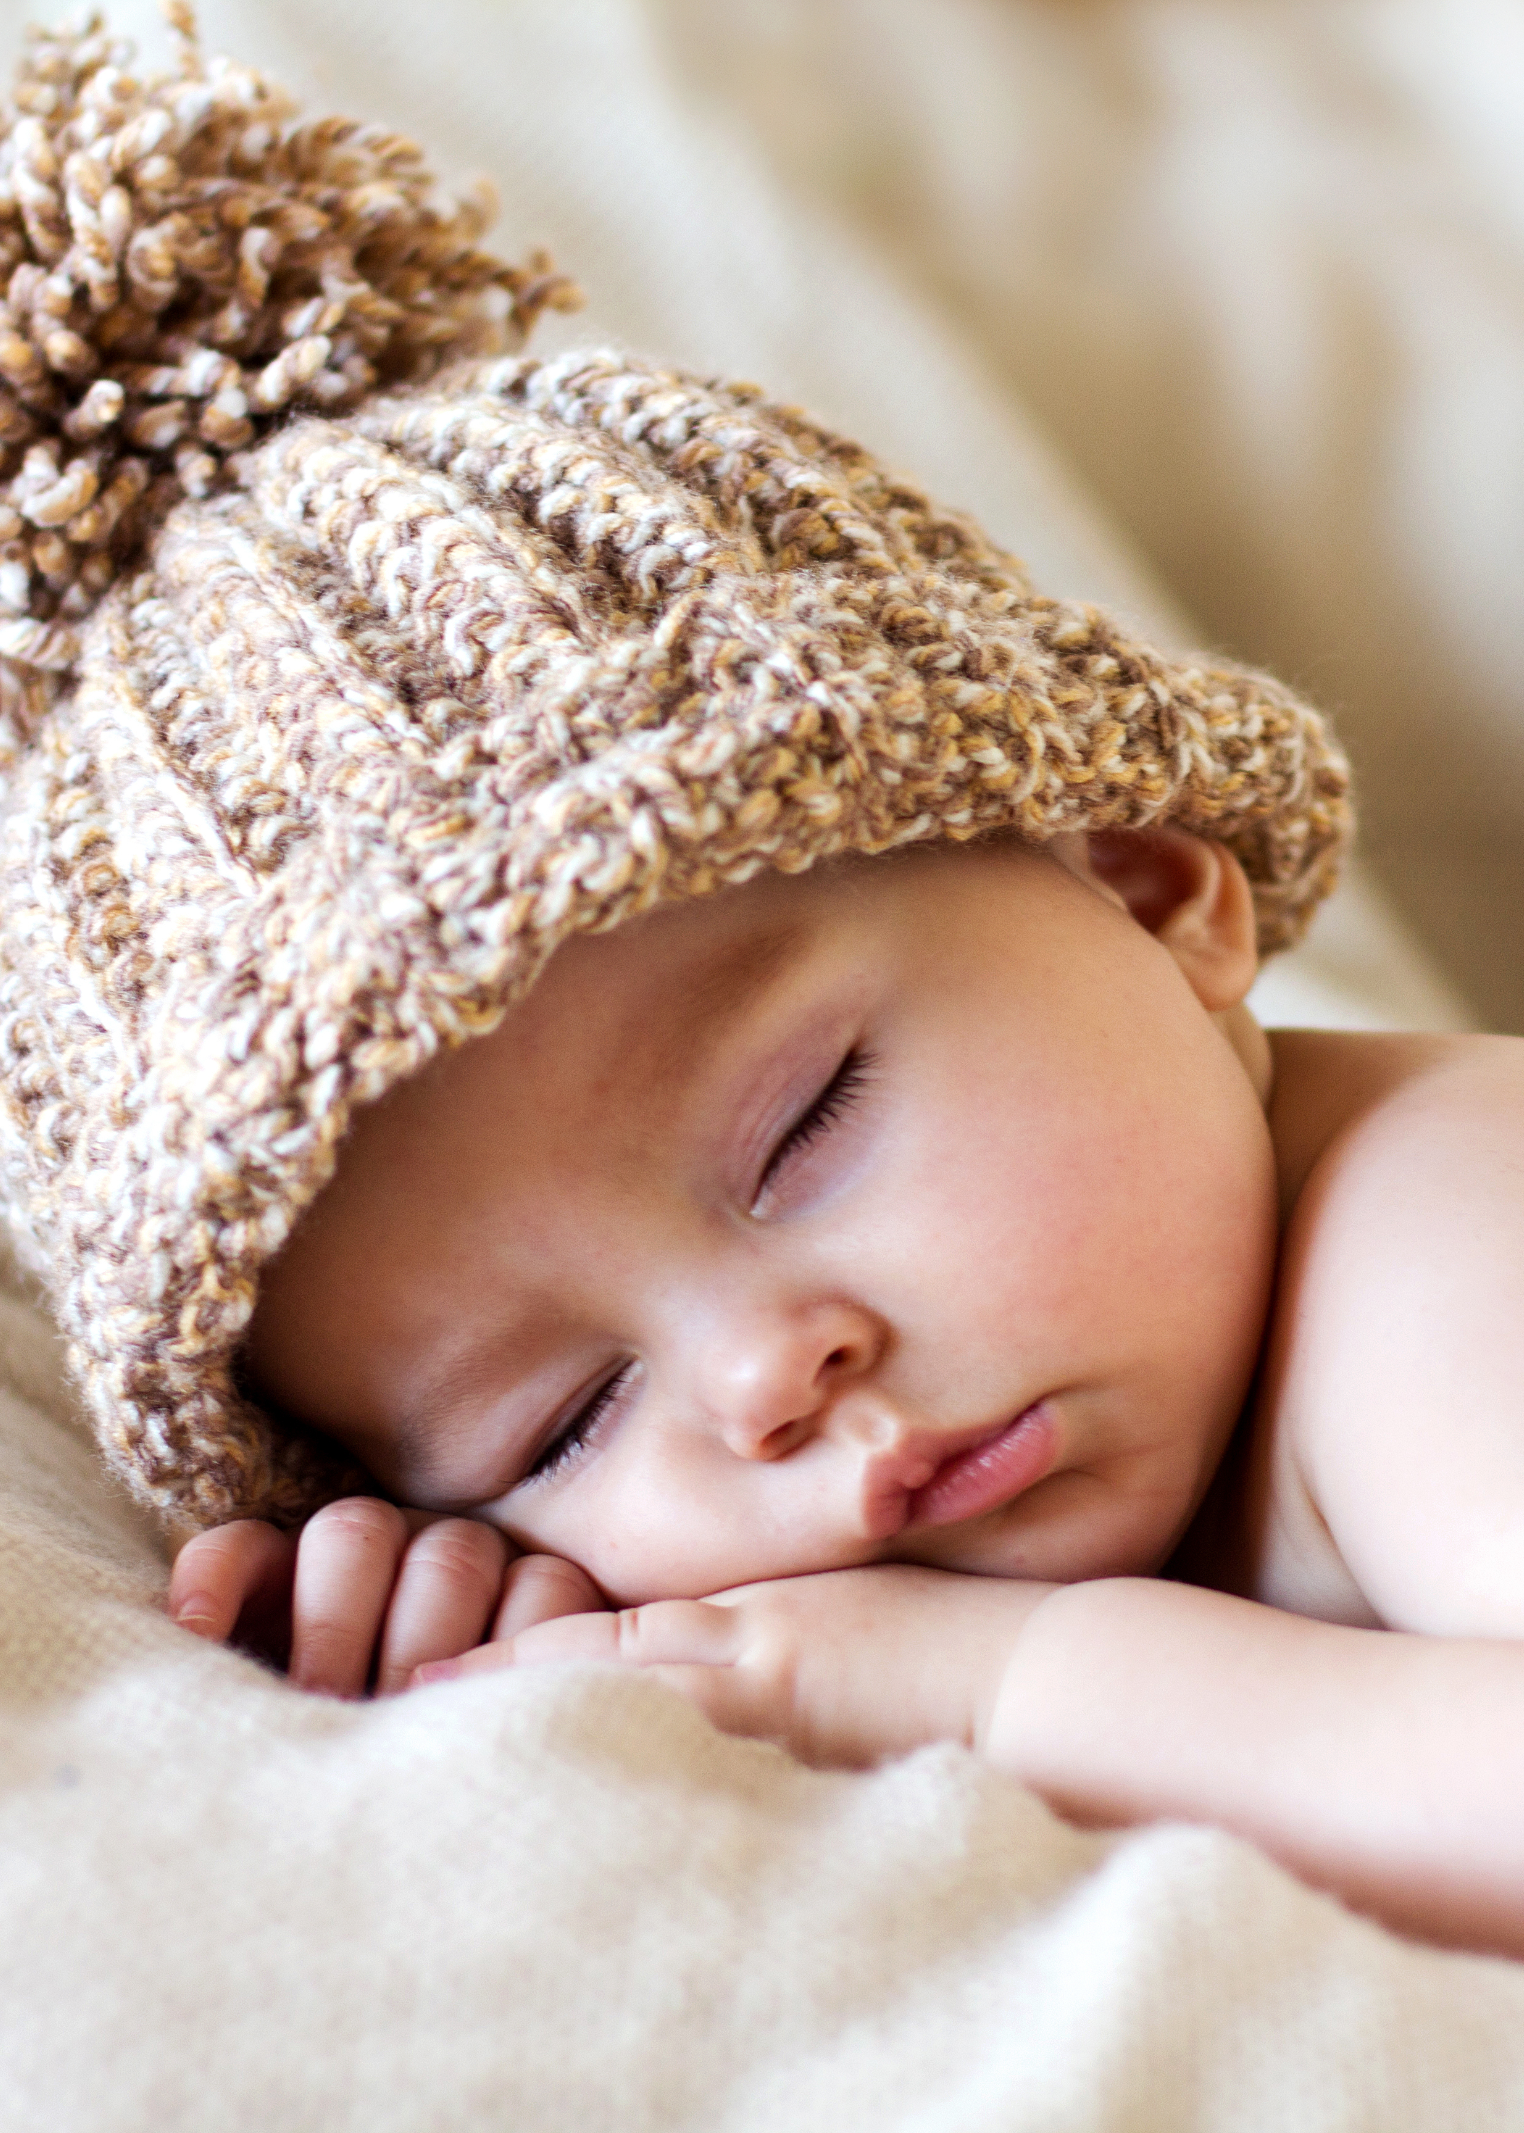 5 Tips For the First Time You Leave Your Baby Overnight